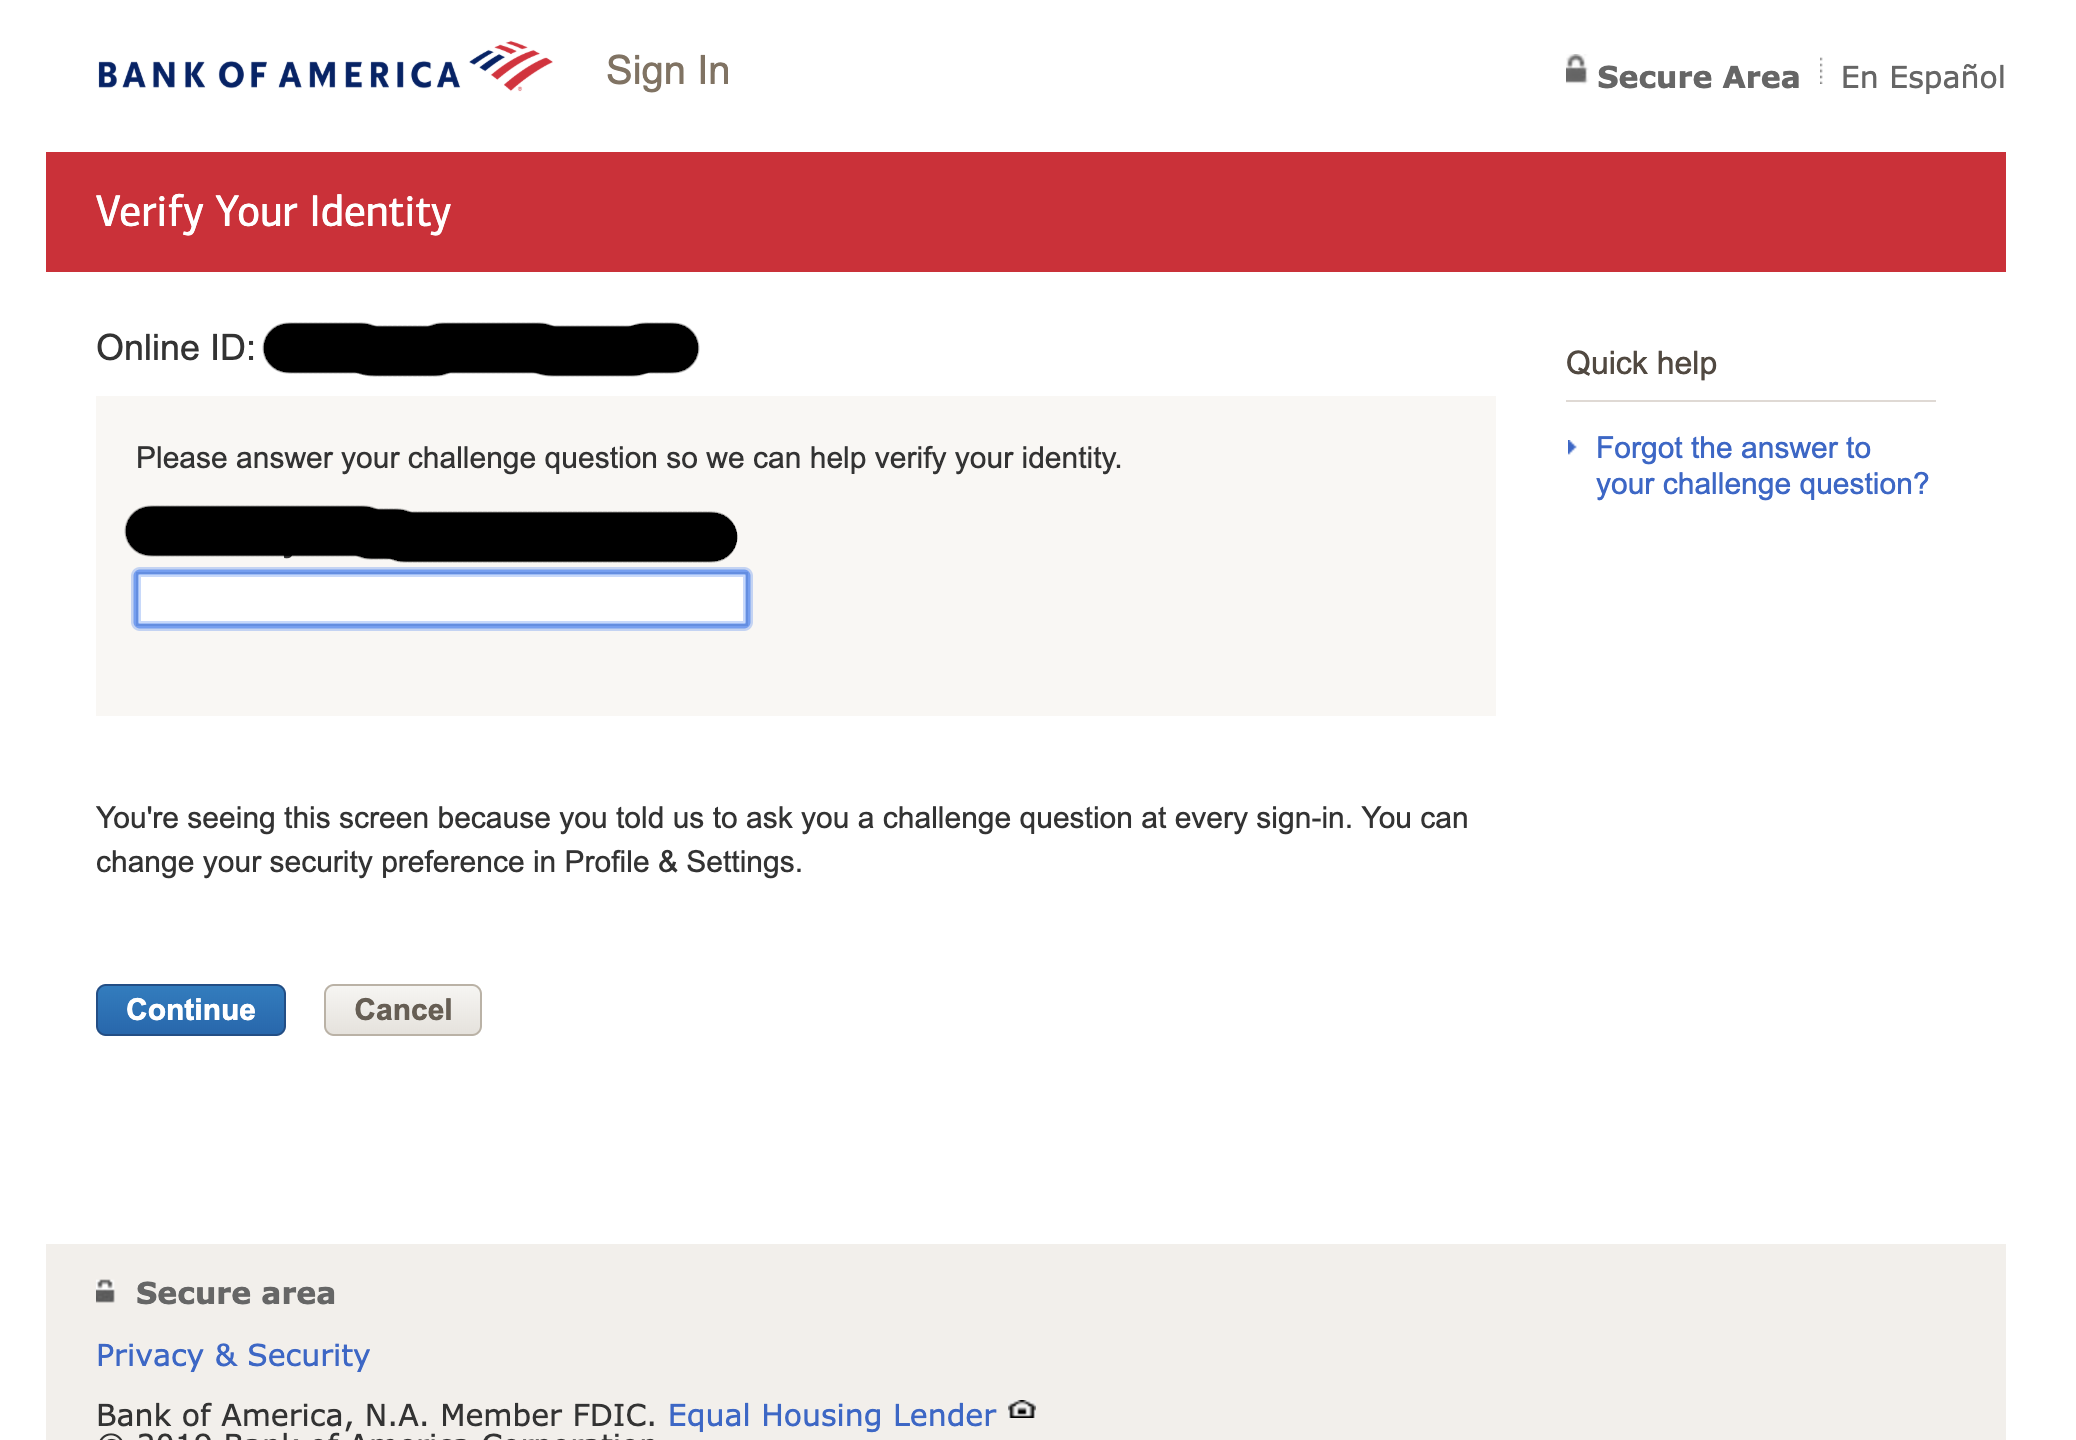 1Password doesn't fill in the Bank of America login